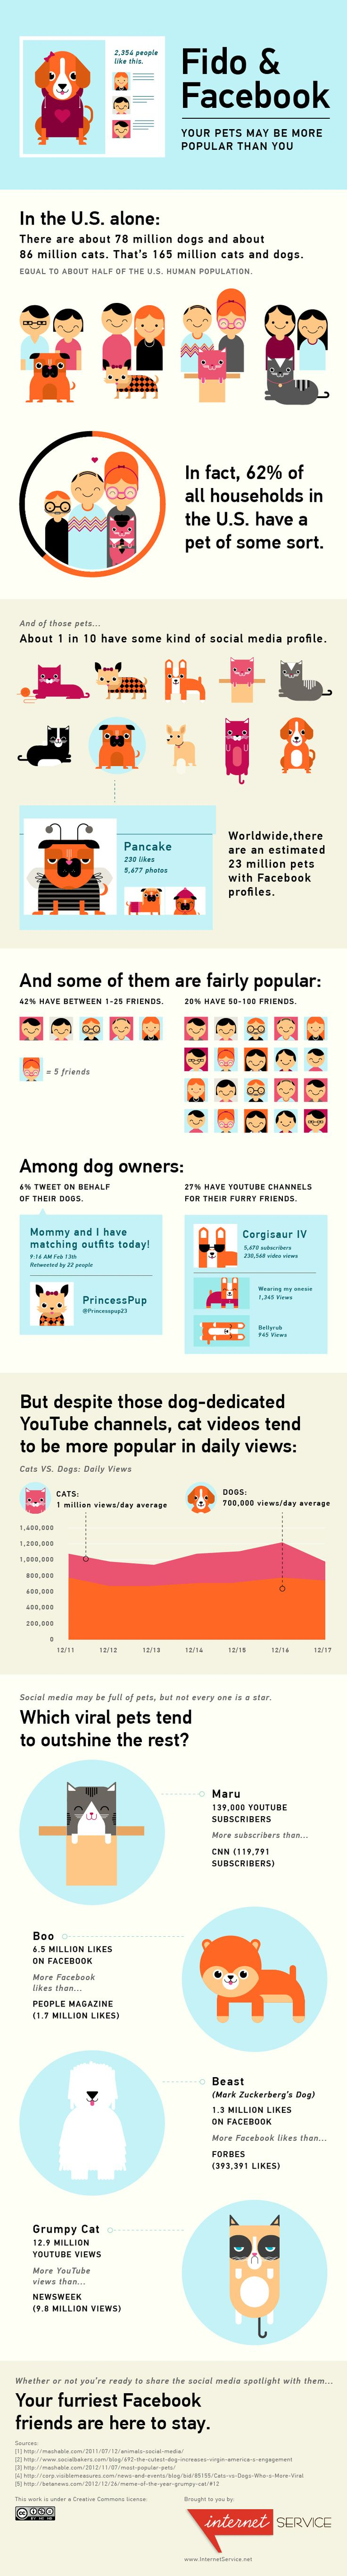 93 best Dog Grooming Business Marketing images on Pinterest ...